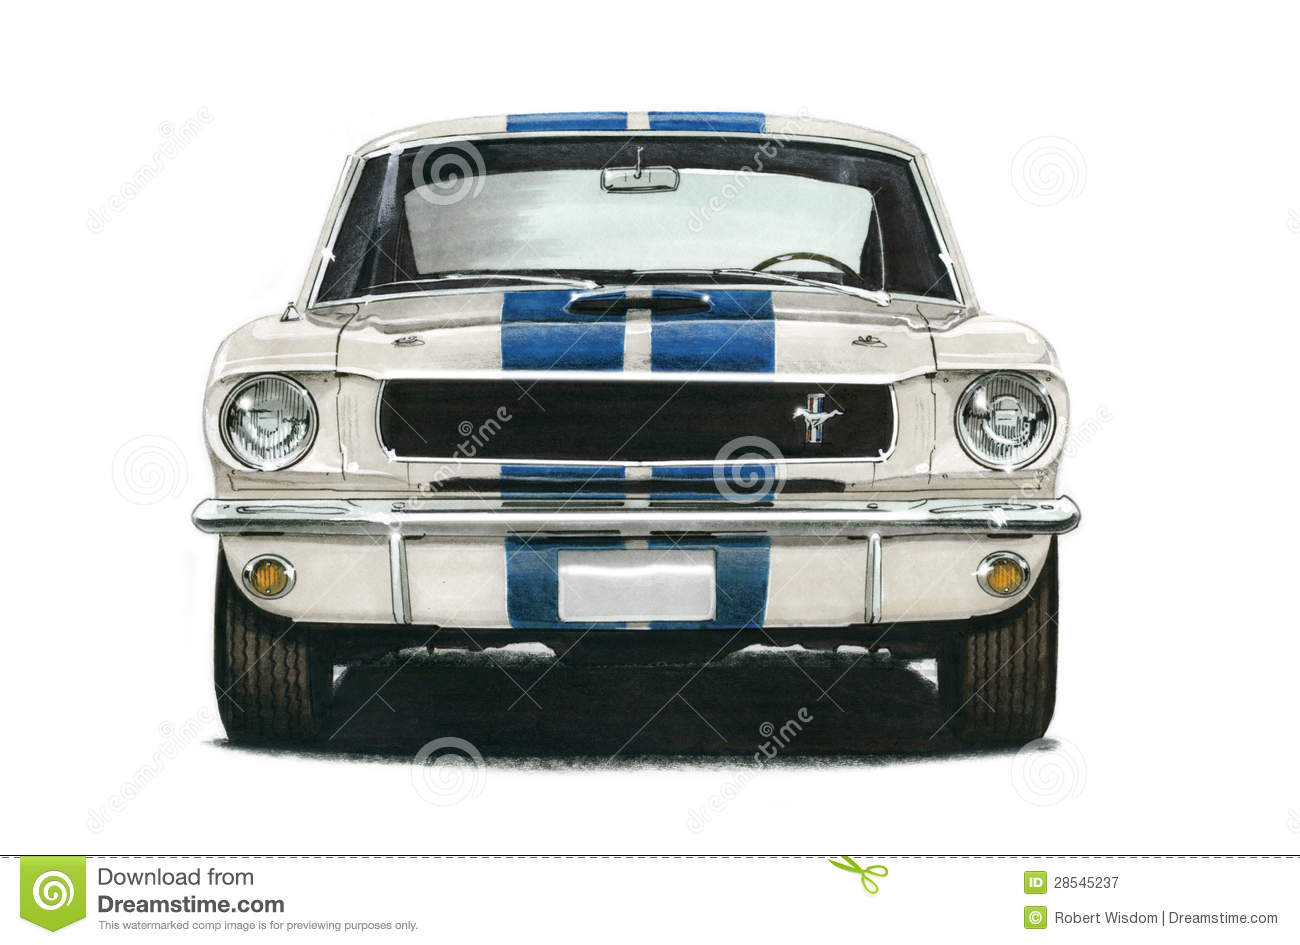 1965 Ford GT350 Shelby Mustang Coupe